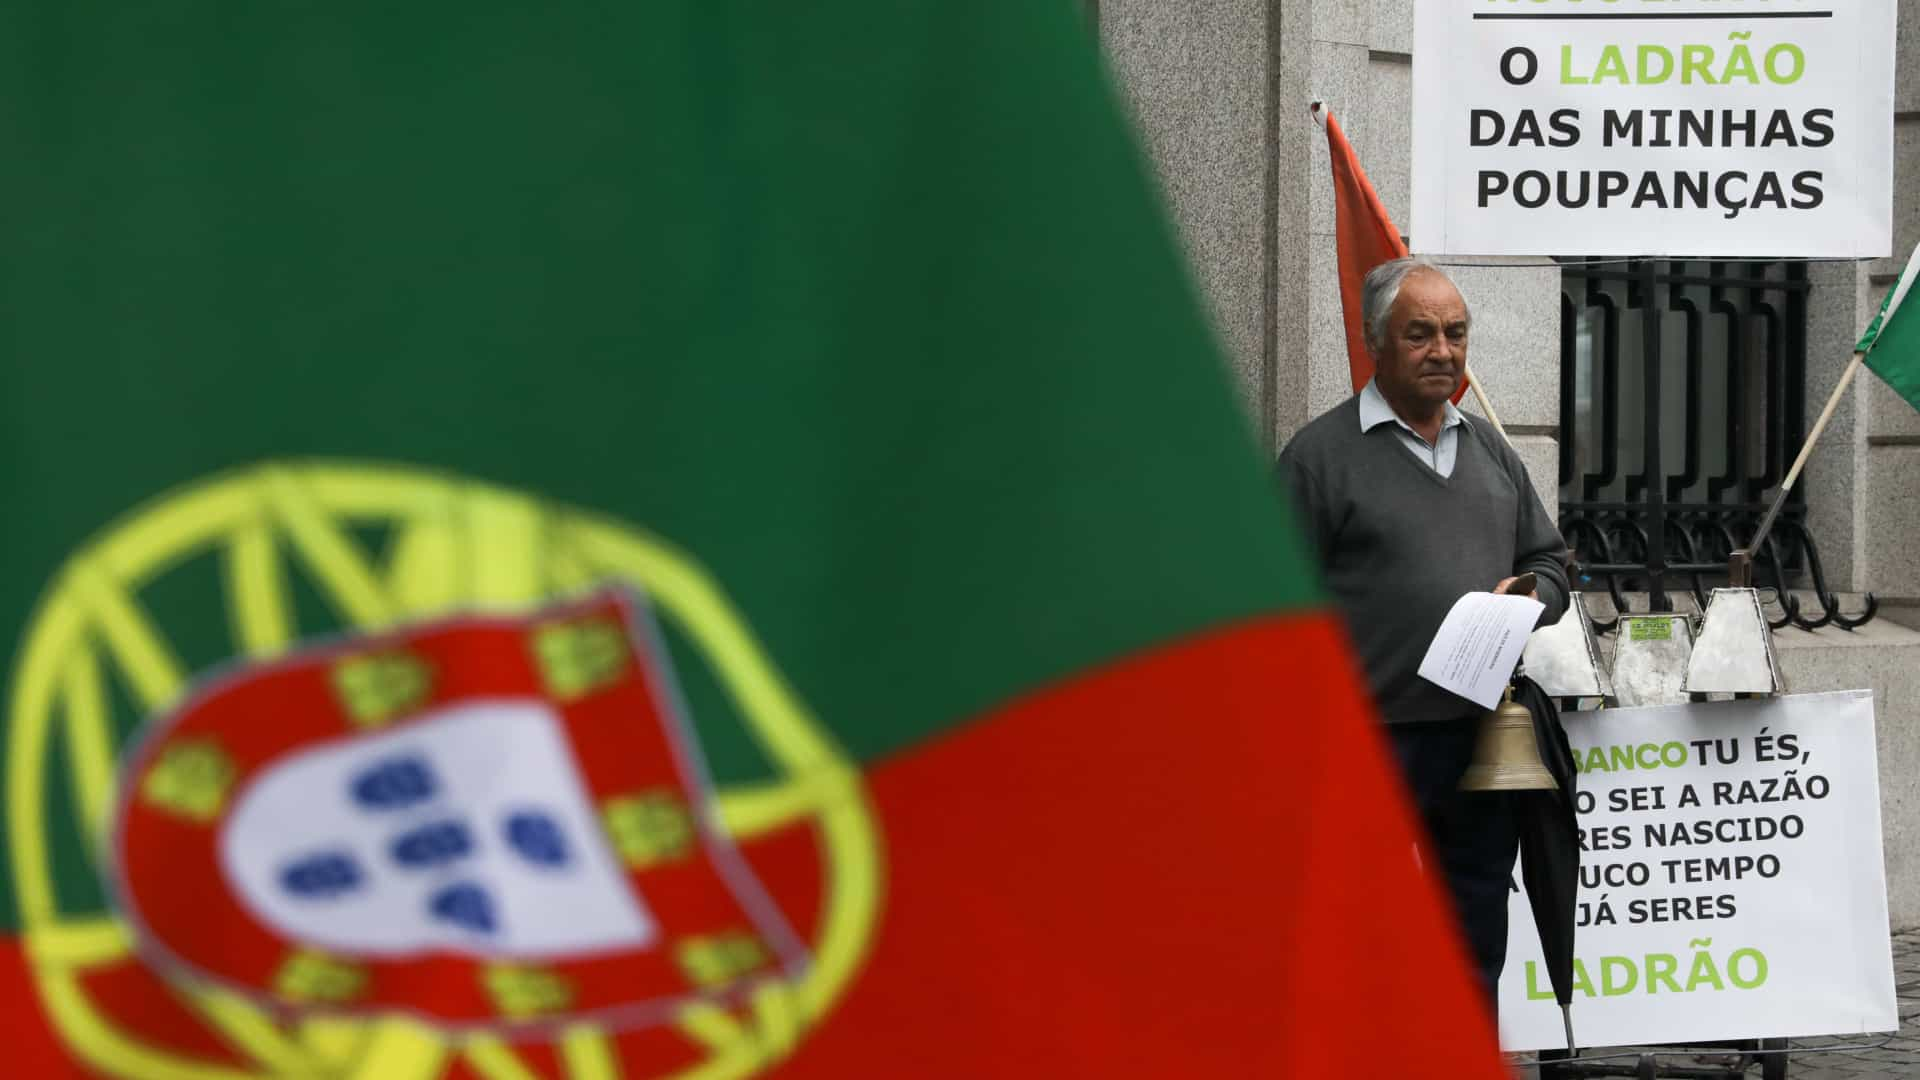 Lesados do BES manifestam-se hoje junto à sede do PS no Porto